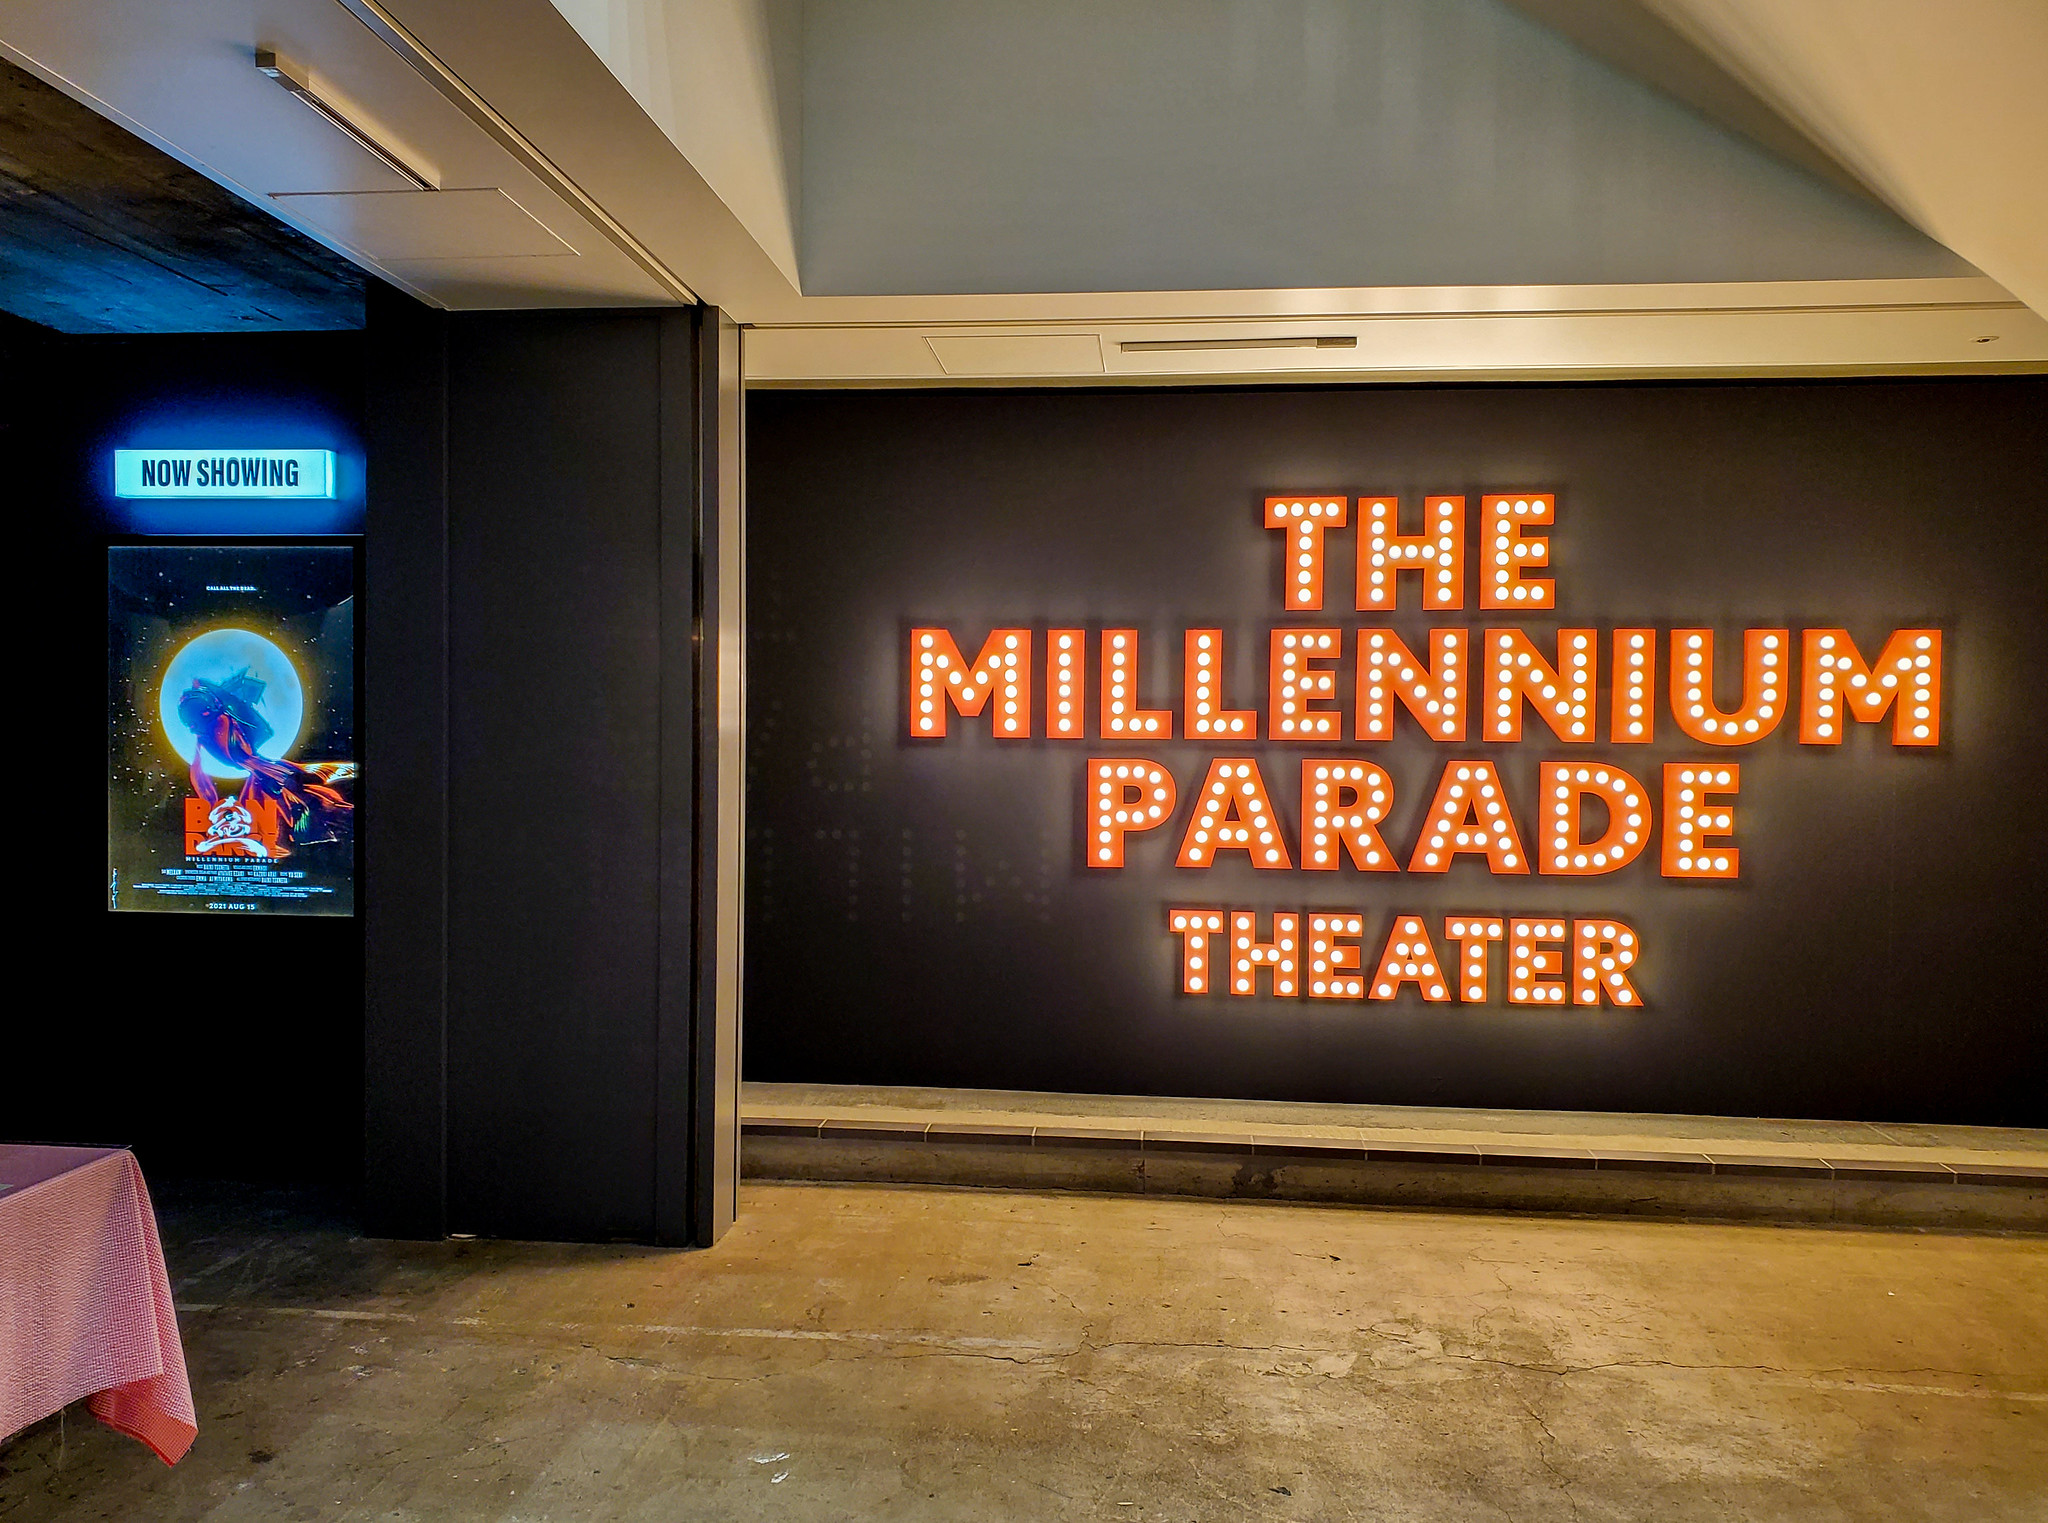 Sony Park展 映画は、森だ。 with millennium parade